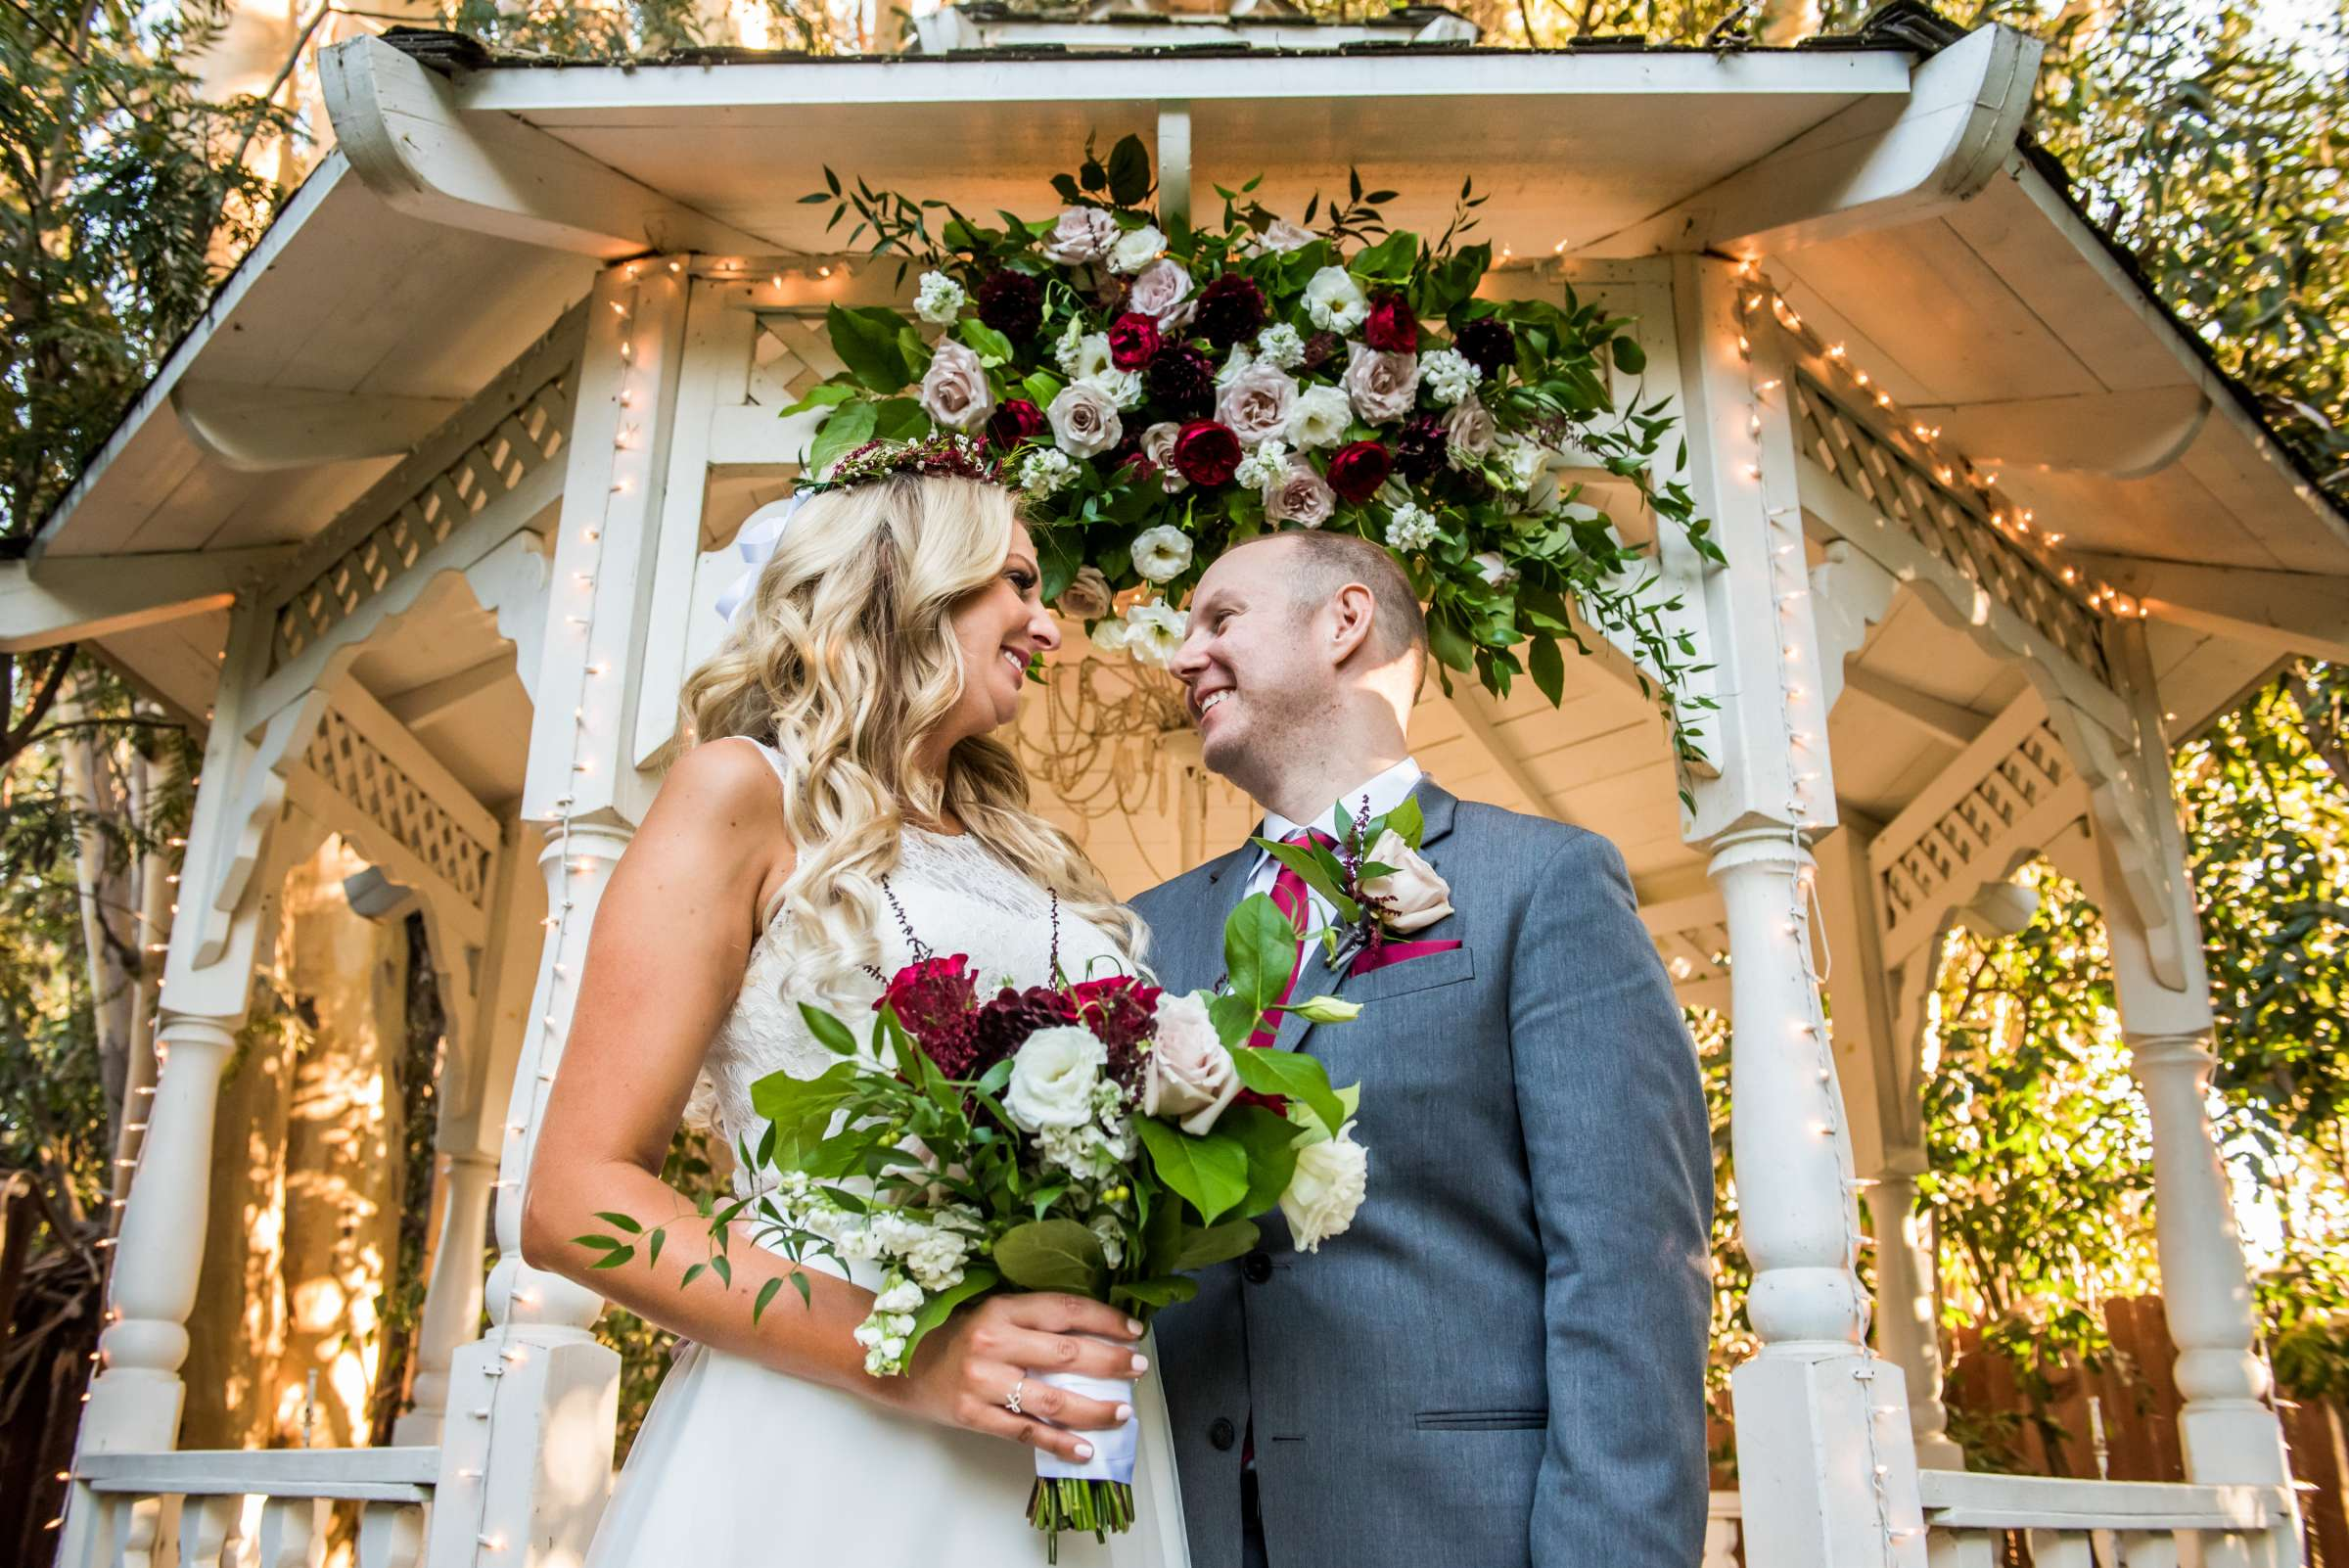 Twin Oaks House & Gardens Wedding Estate Wedding, Brittany and Sean Wedding Photo #34 by True Photography